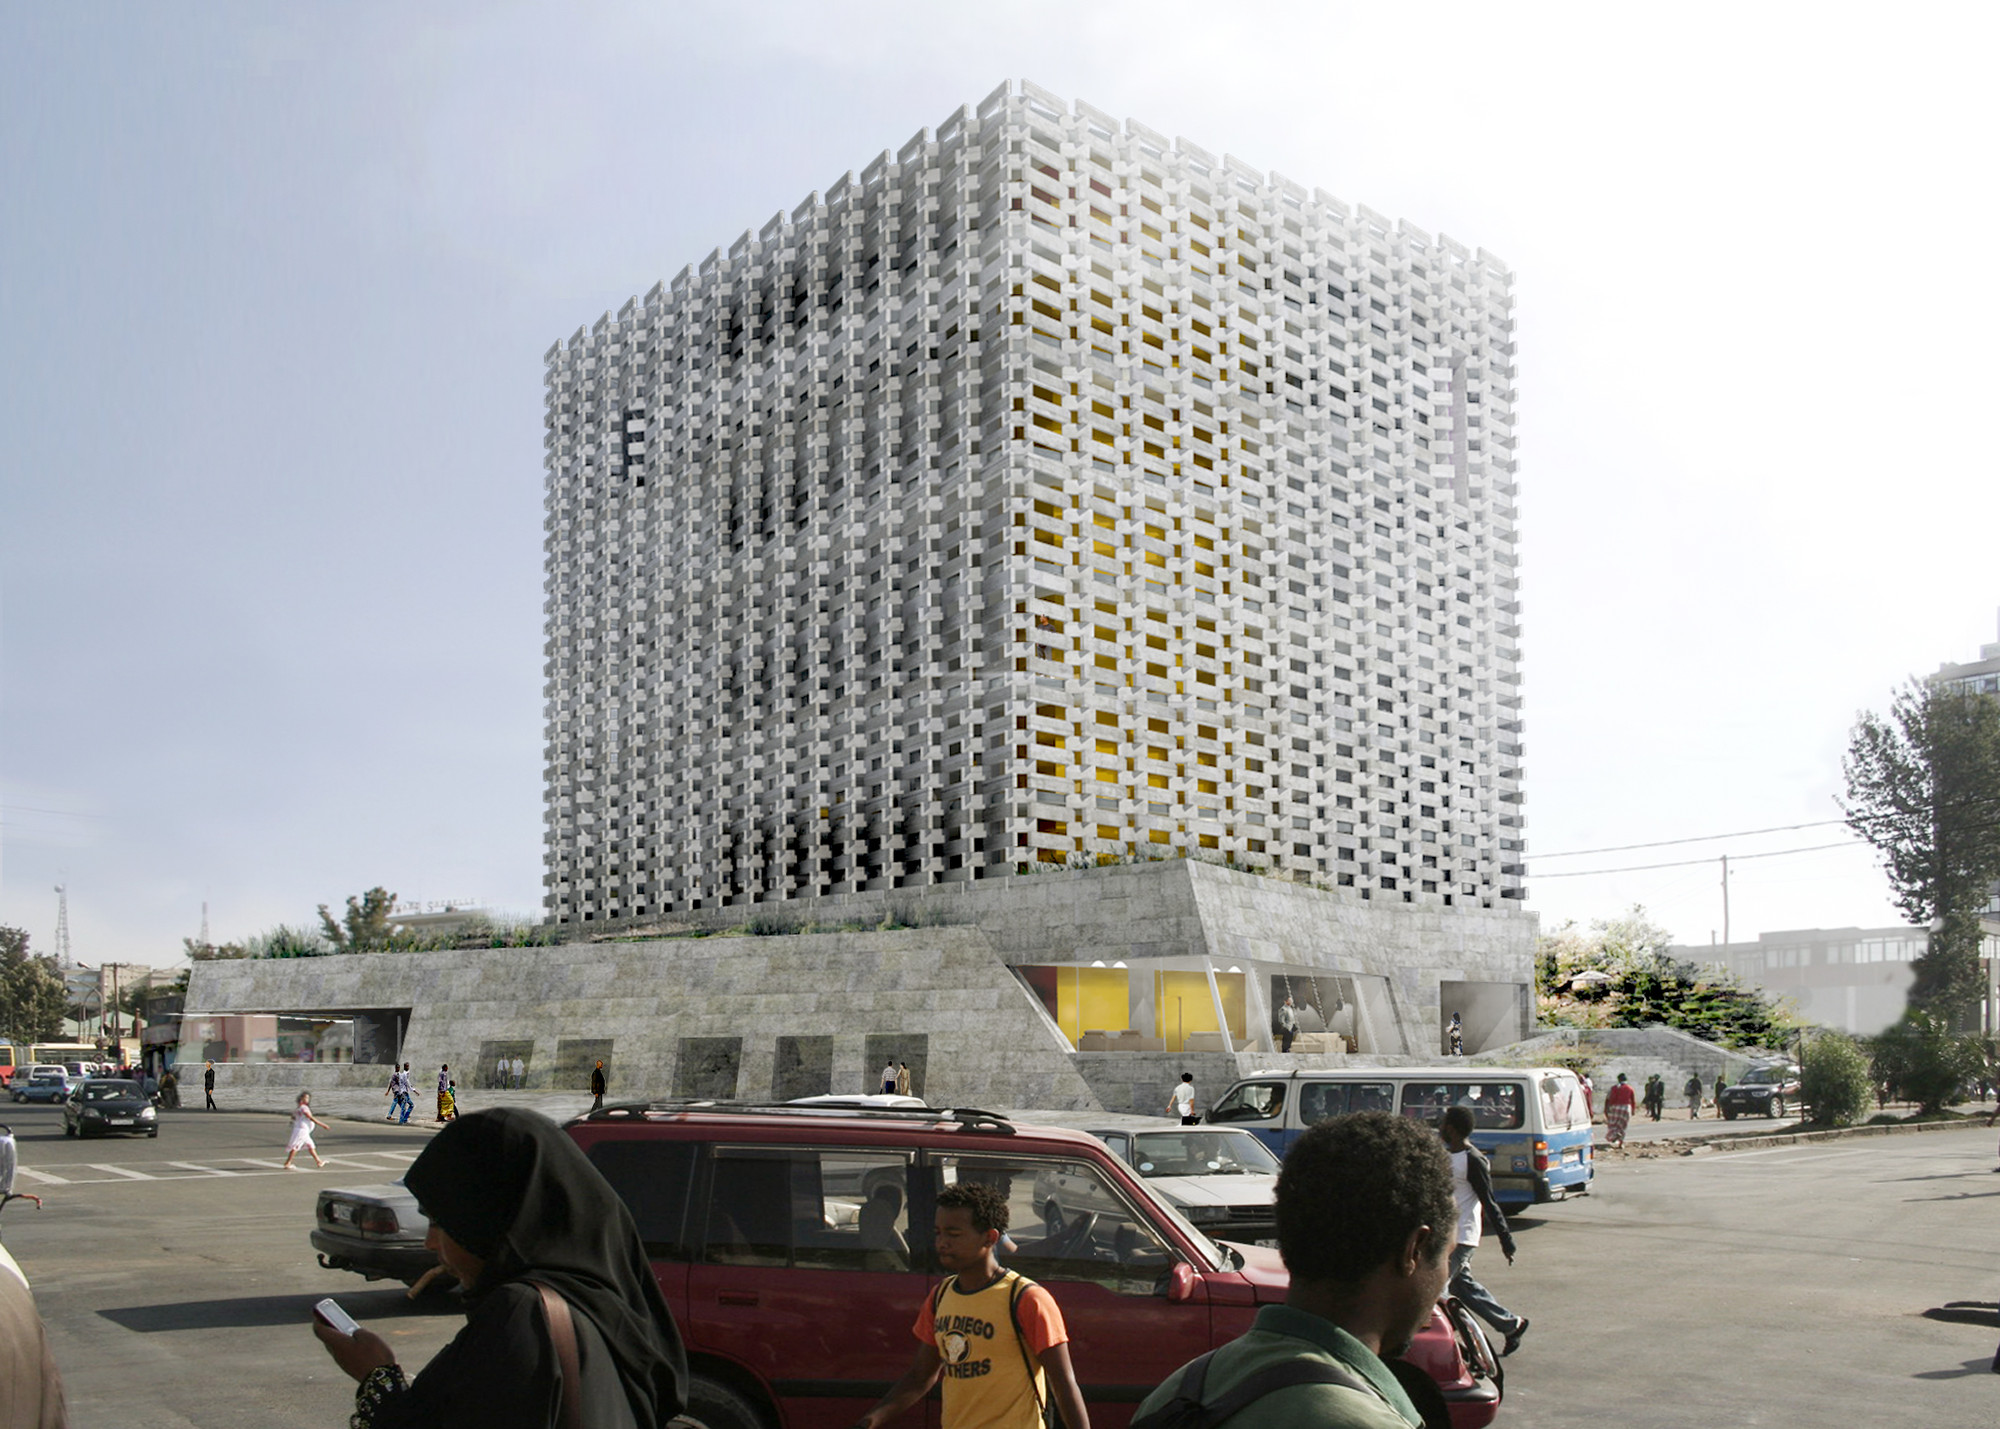 Addis Abeba Chamber of Commerce Headquarters Winning Proposal / BC Architects, Courtesy of BC Architects, ABBA architects, and Adey Tadess